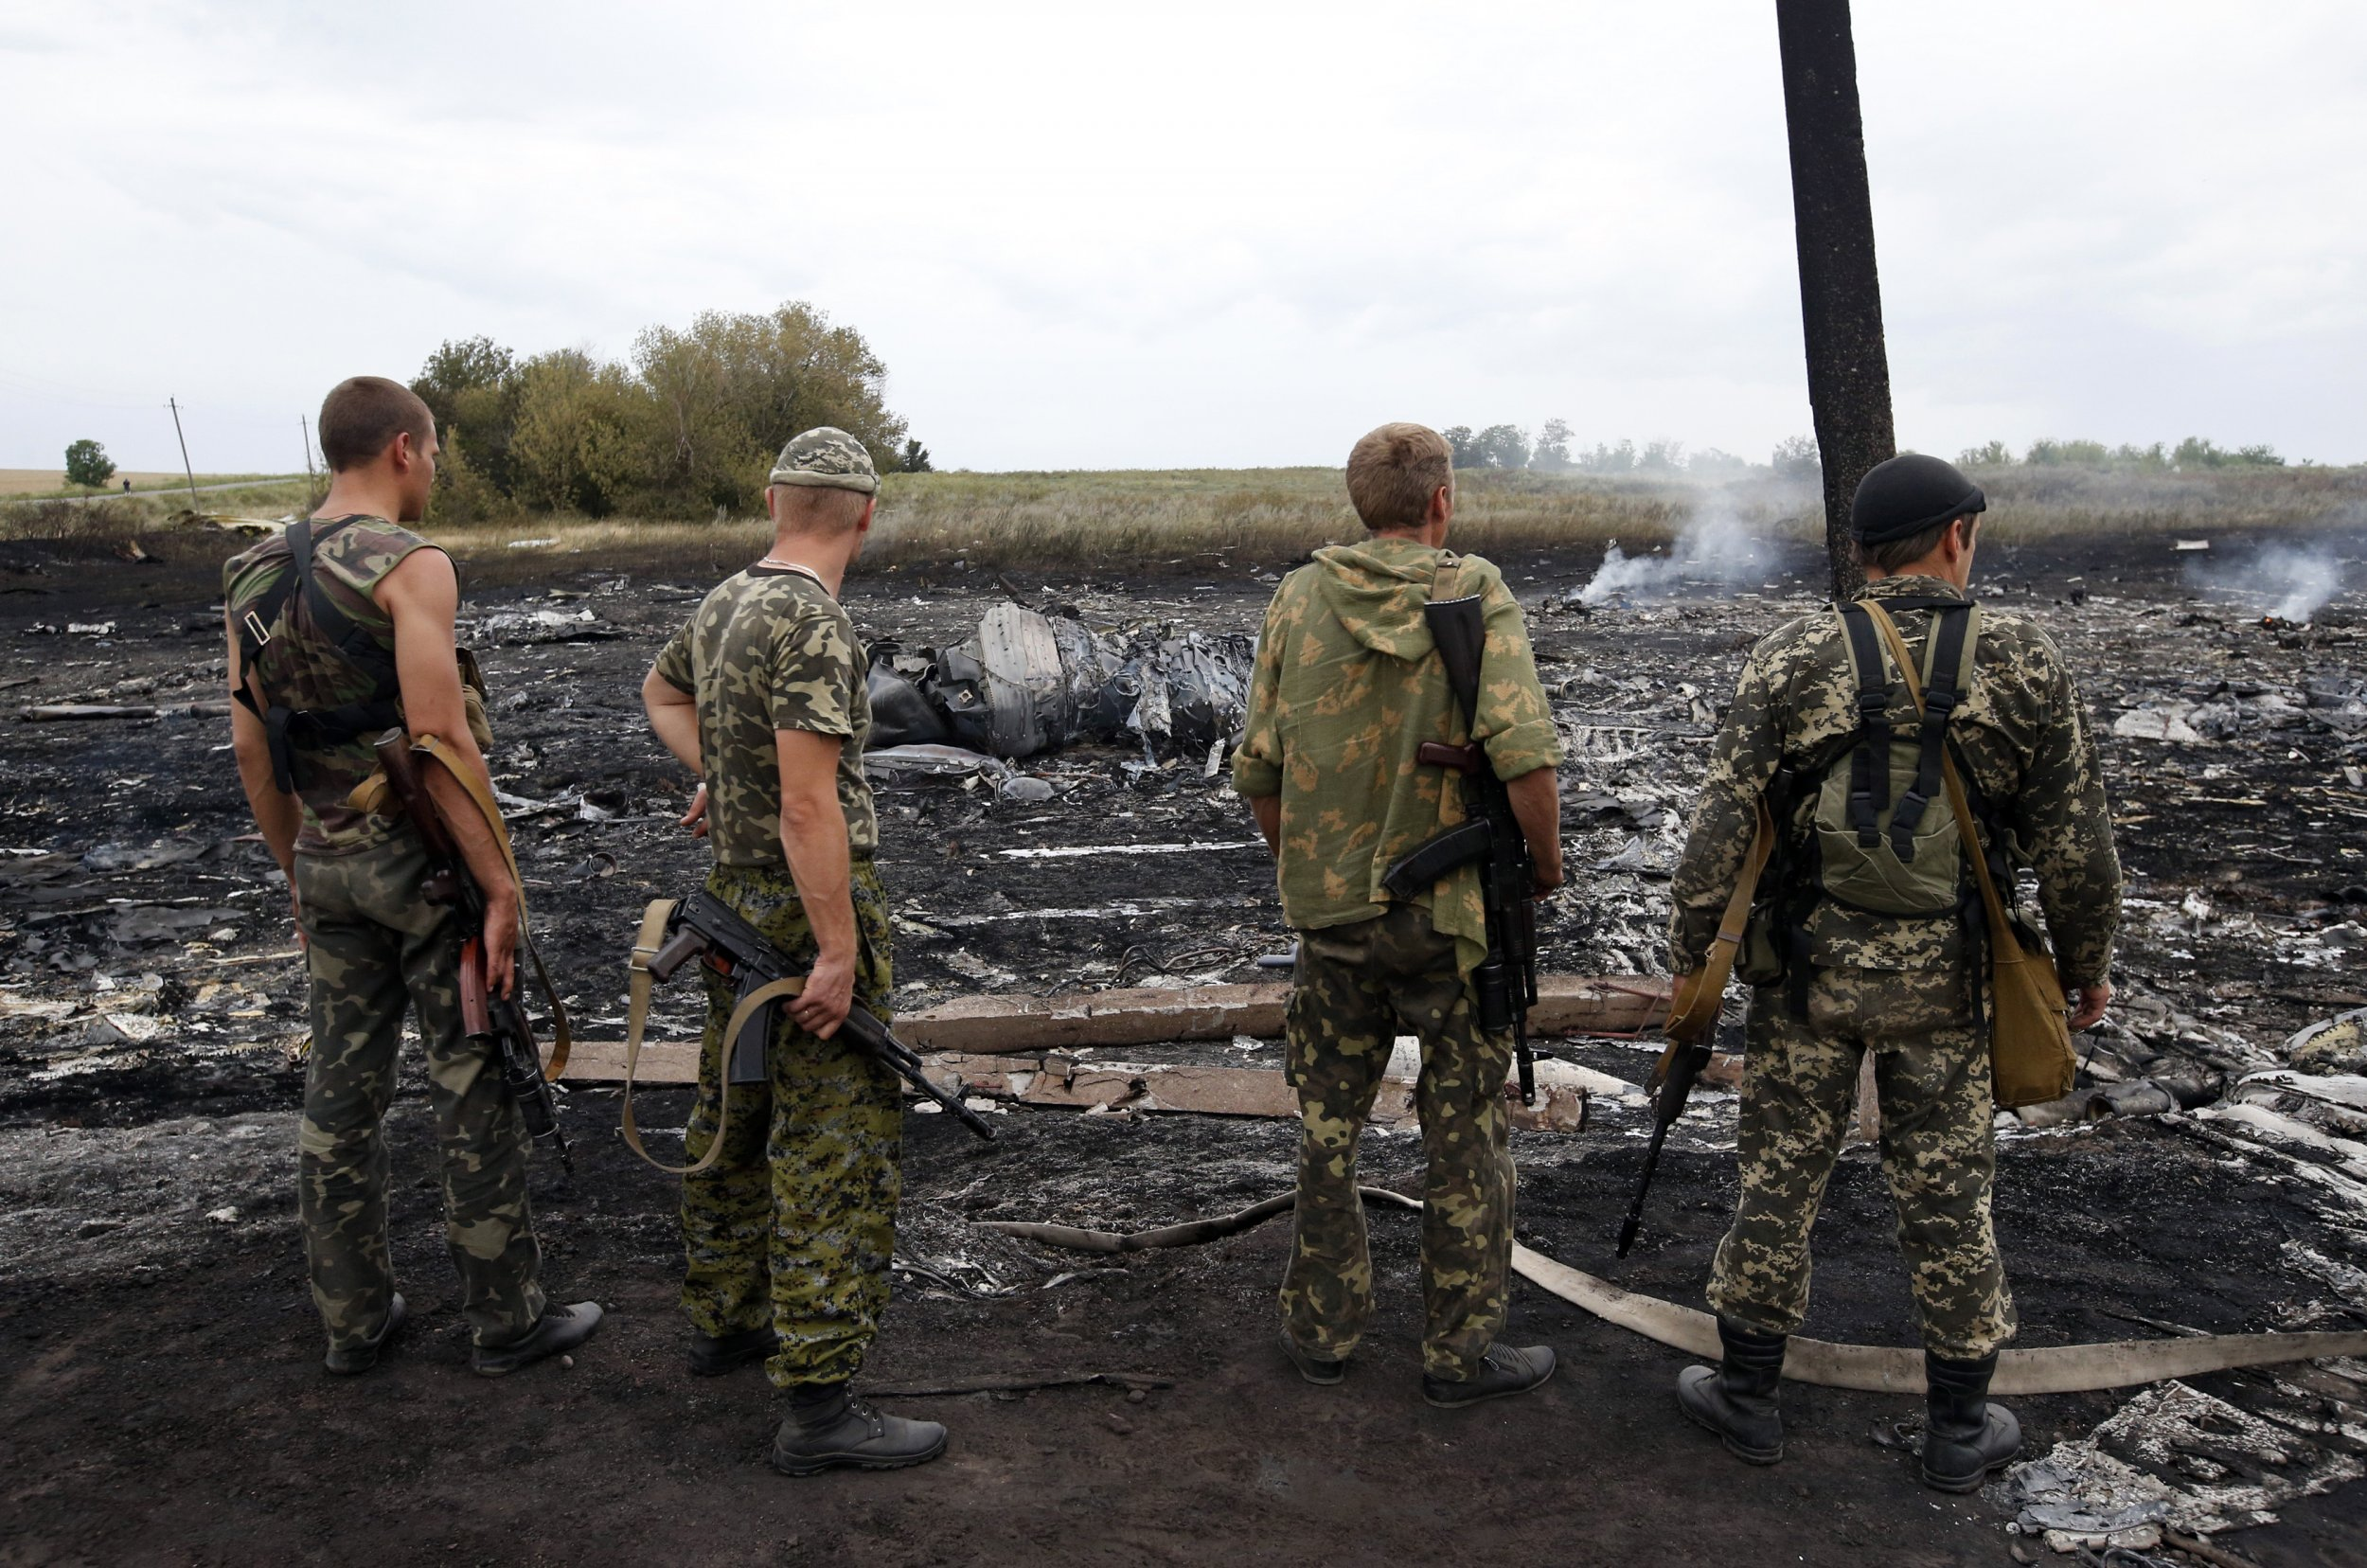 Pro-Russian separatists at site of plane crash